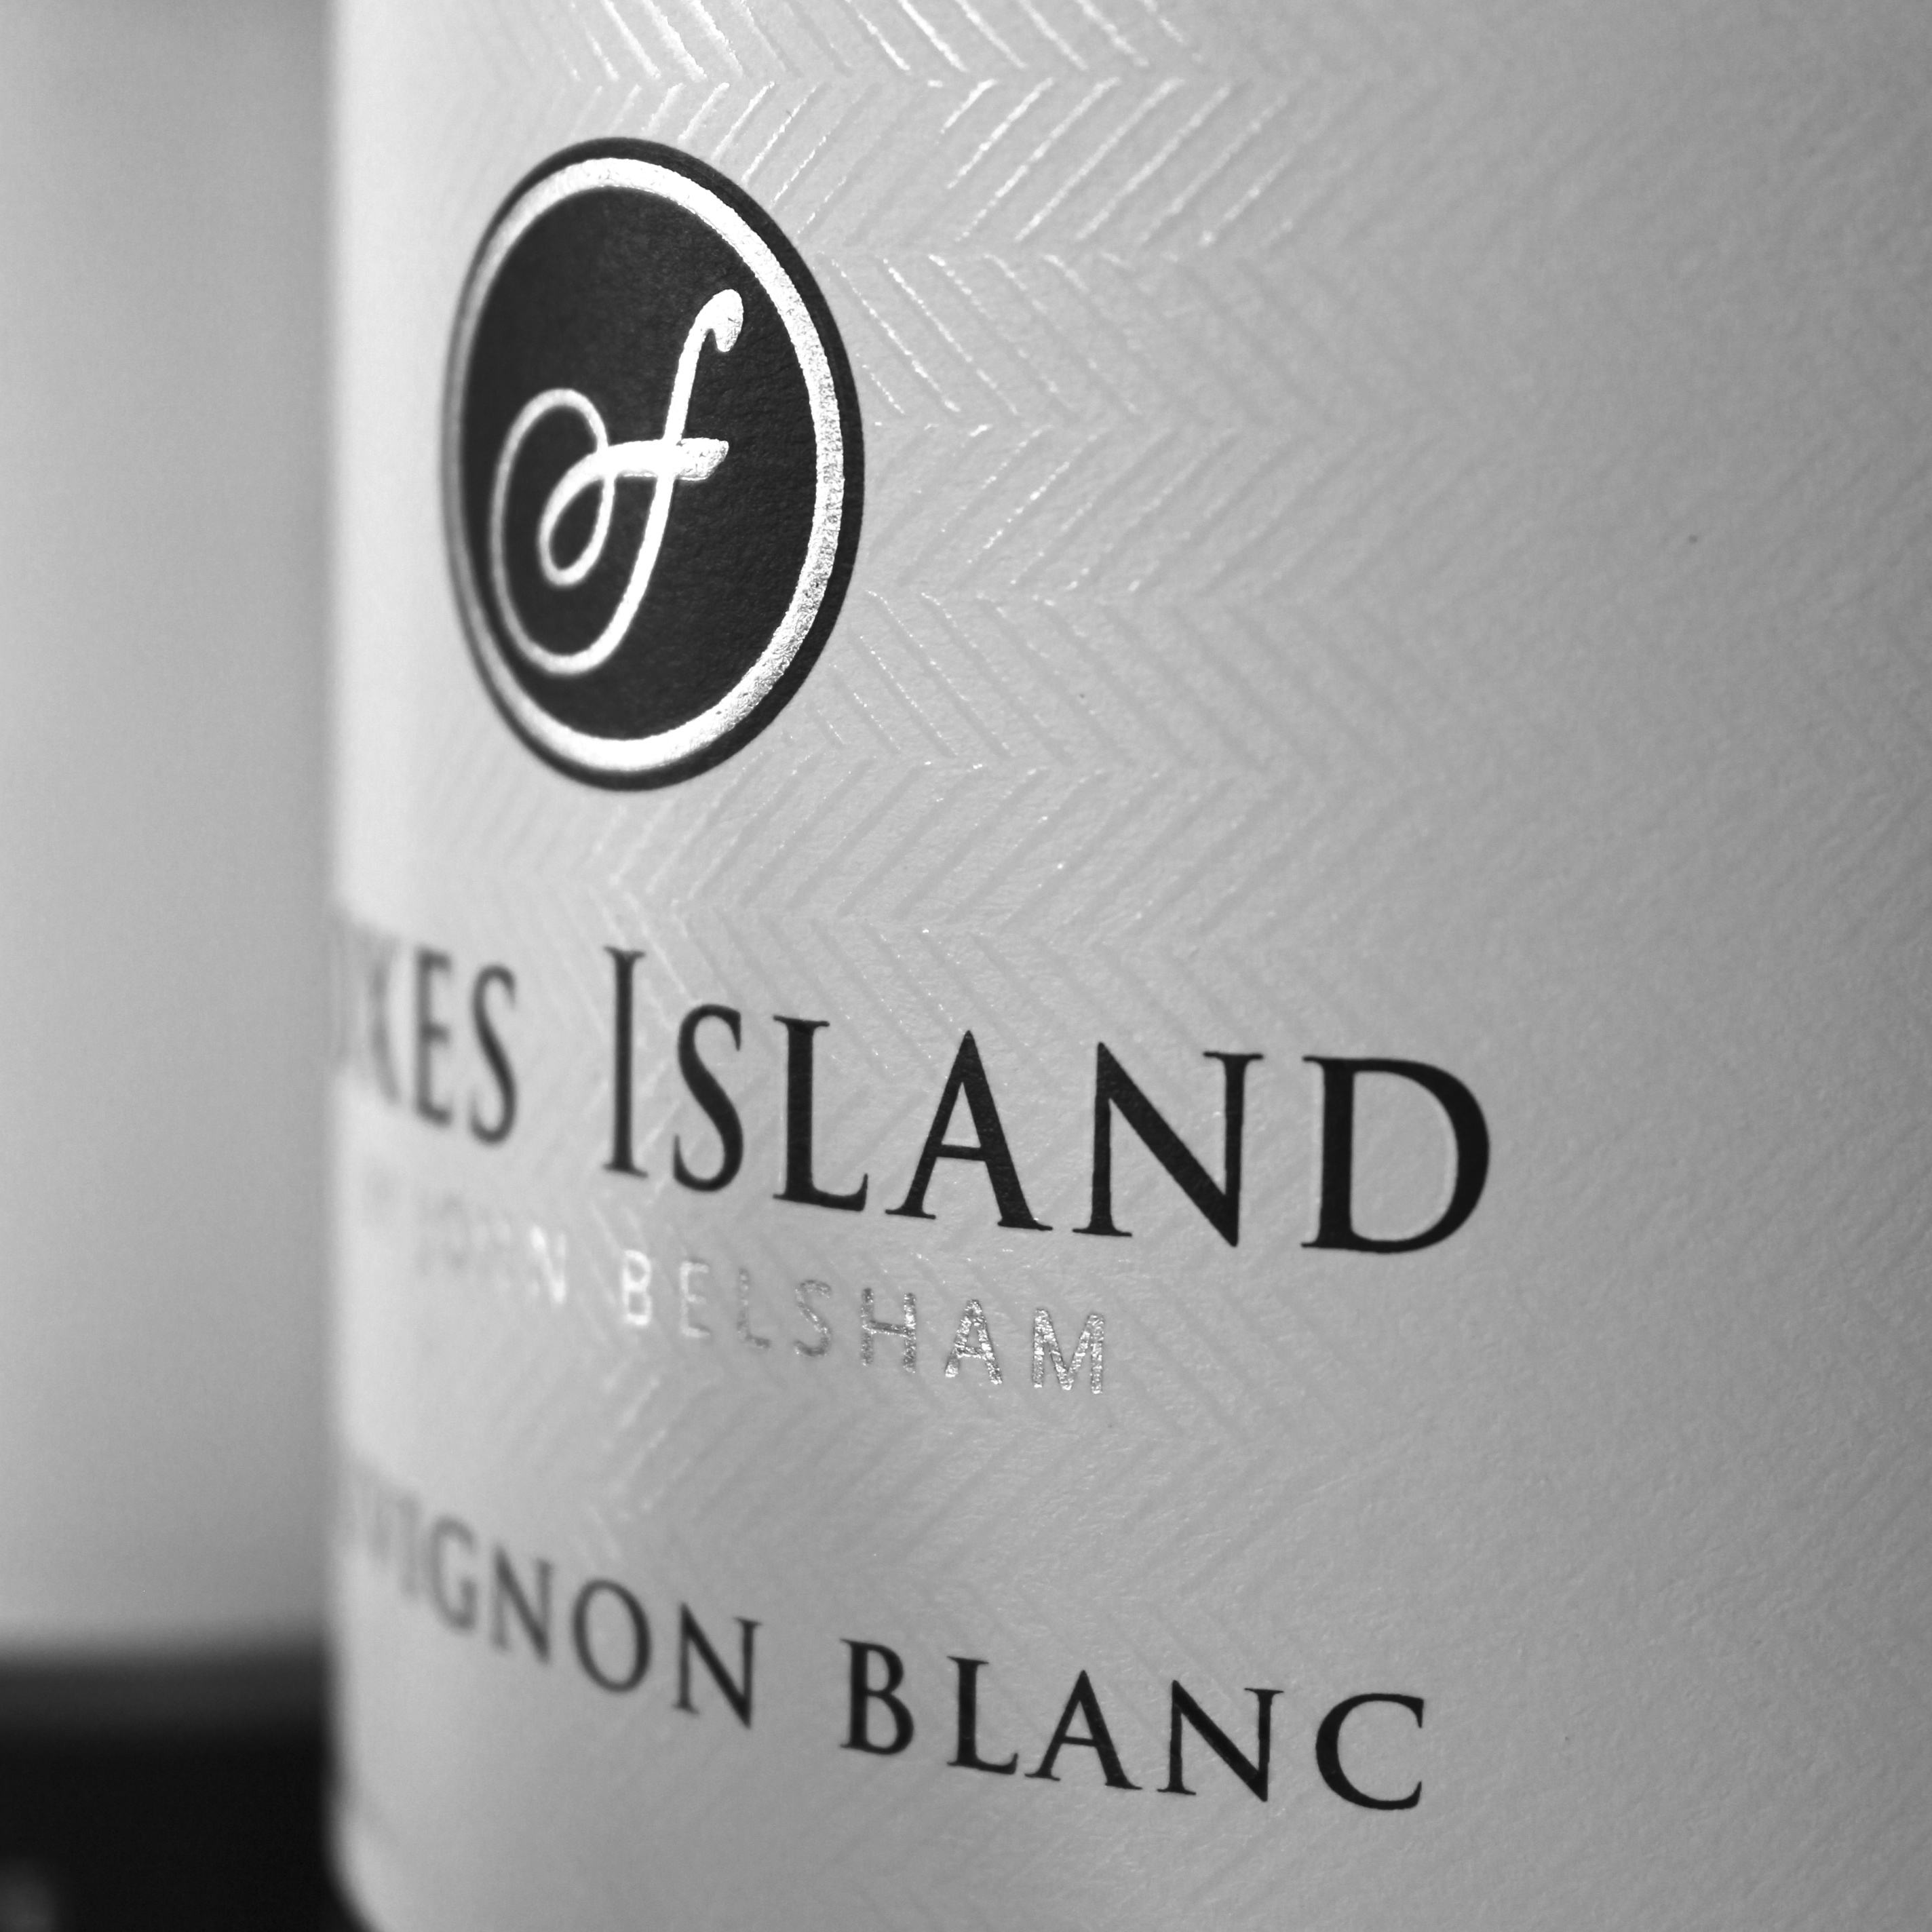 Foxes Island Single Vineyard Sauvignon Blanc 2012